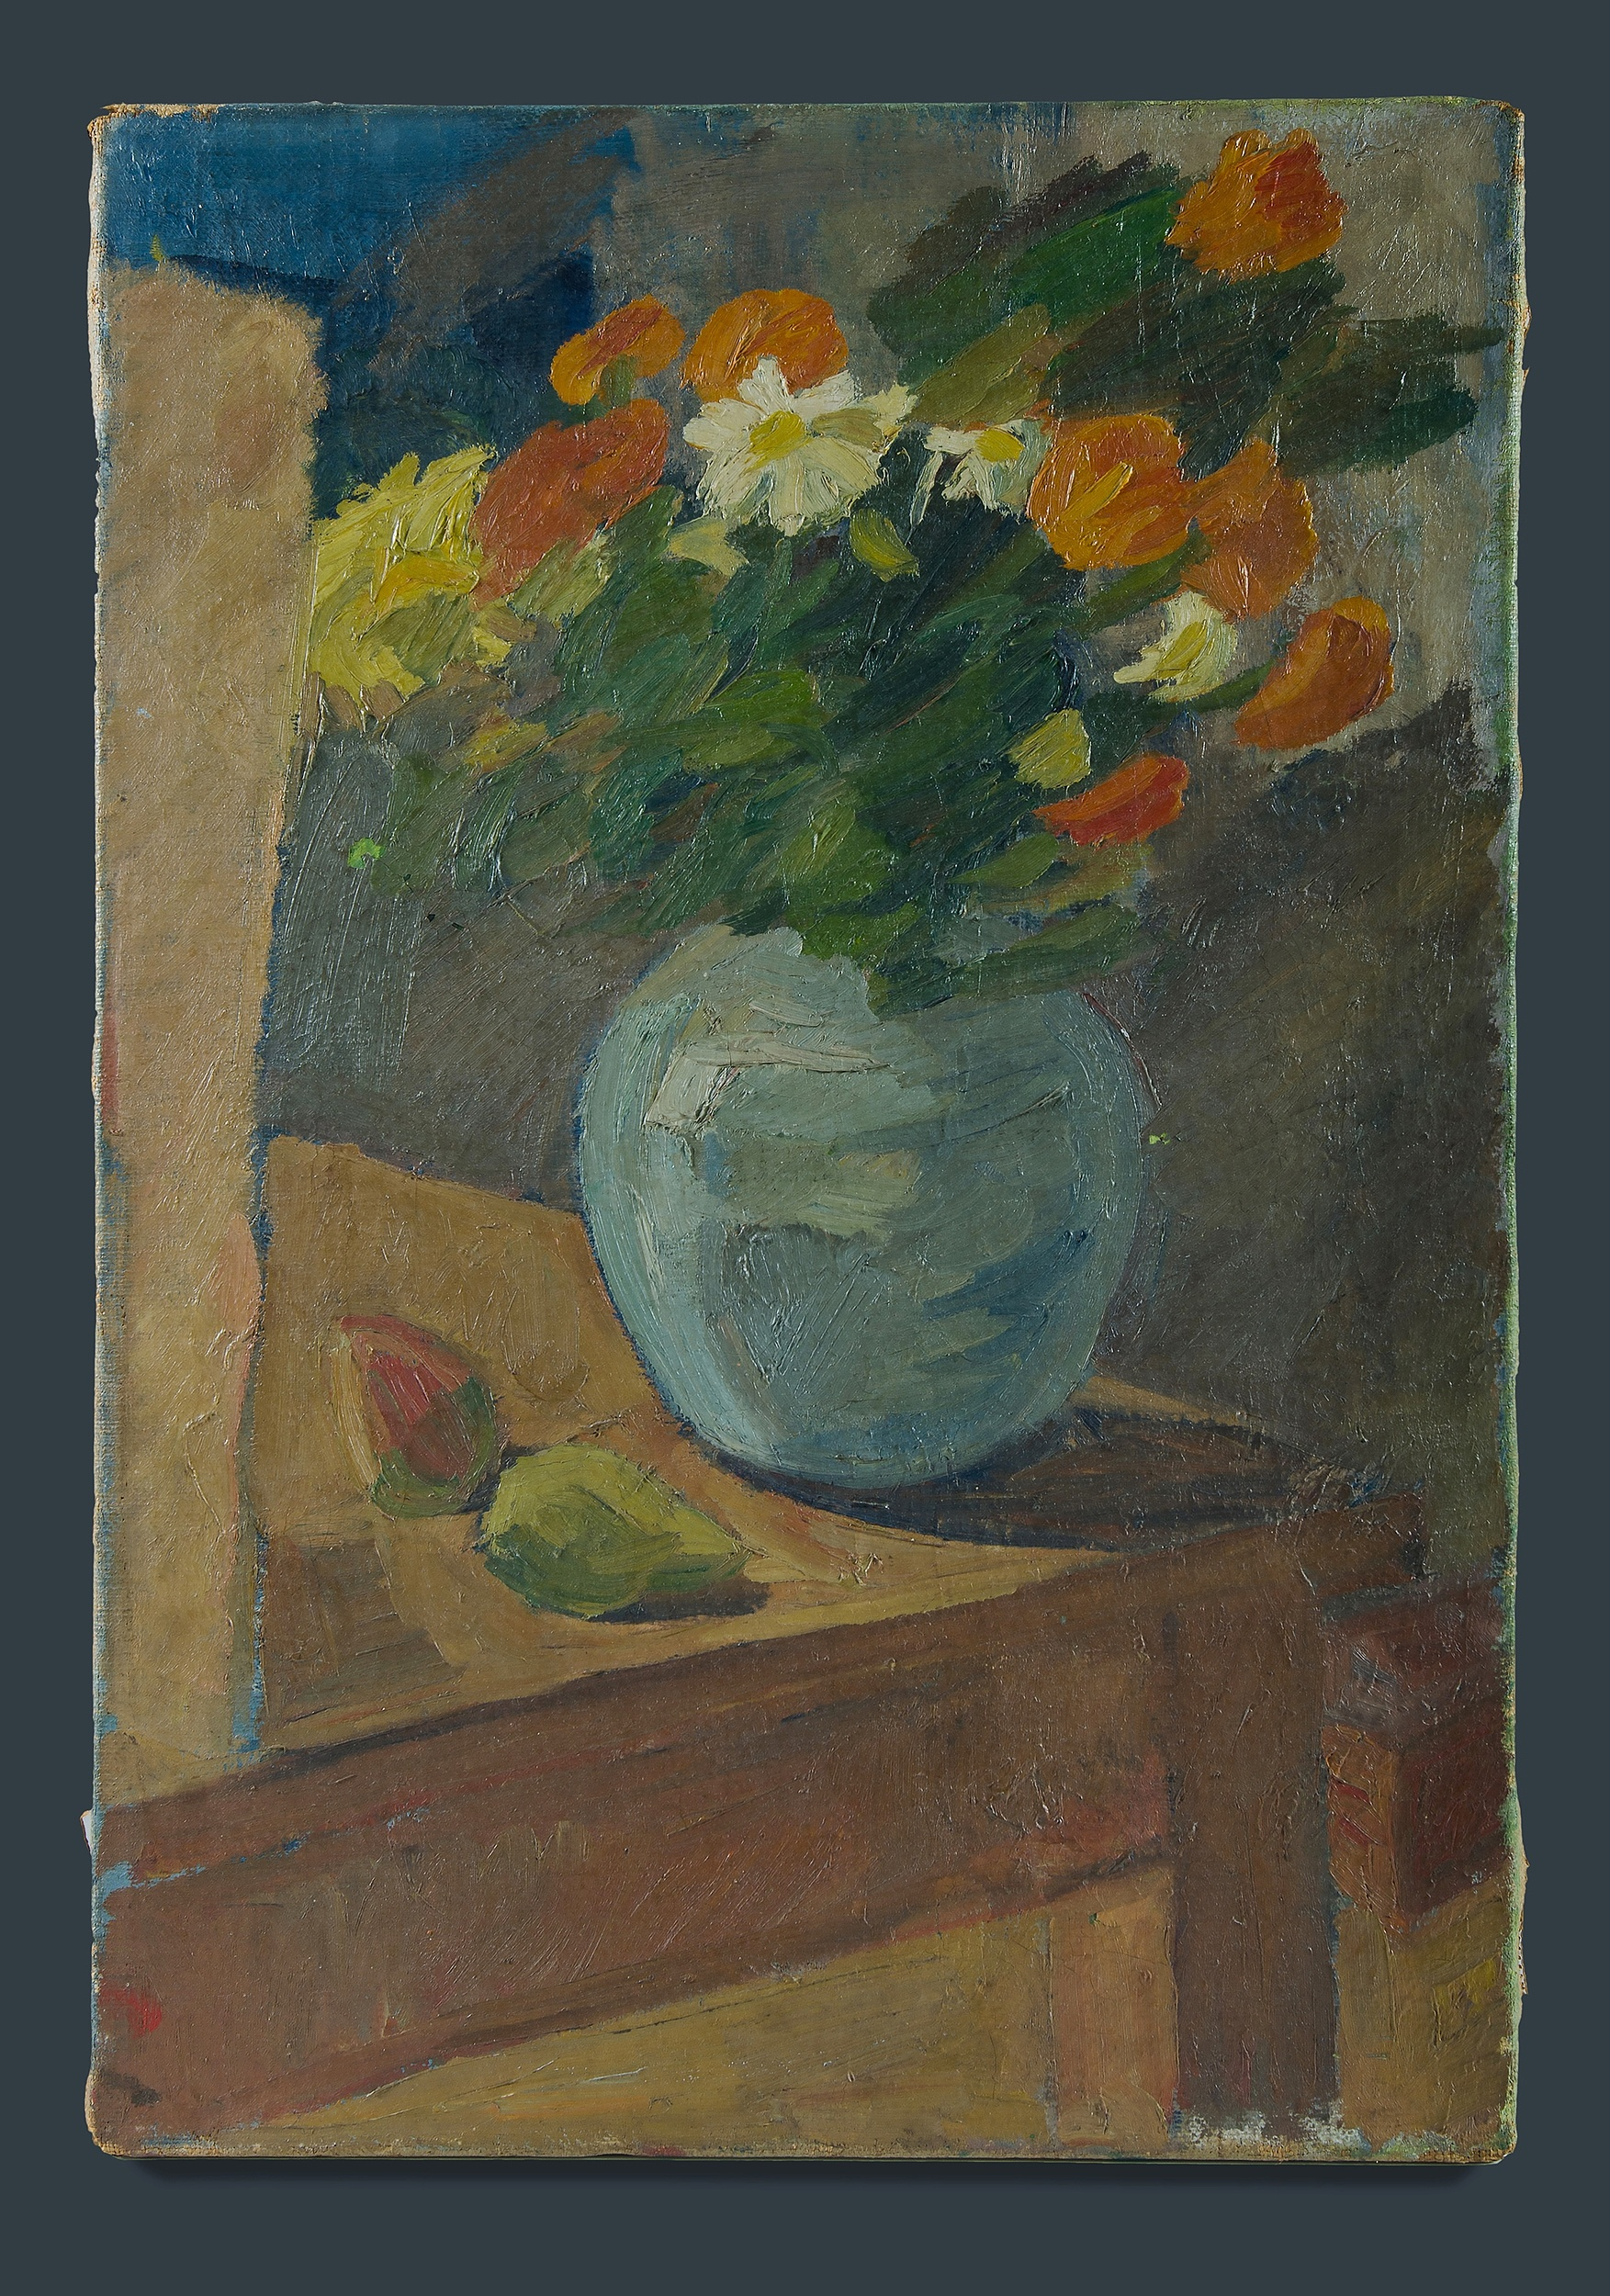 'European School: Still Life with Mixed Blooms Oil on Canvas'